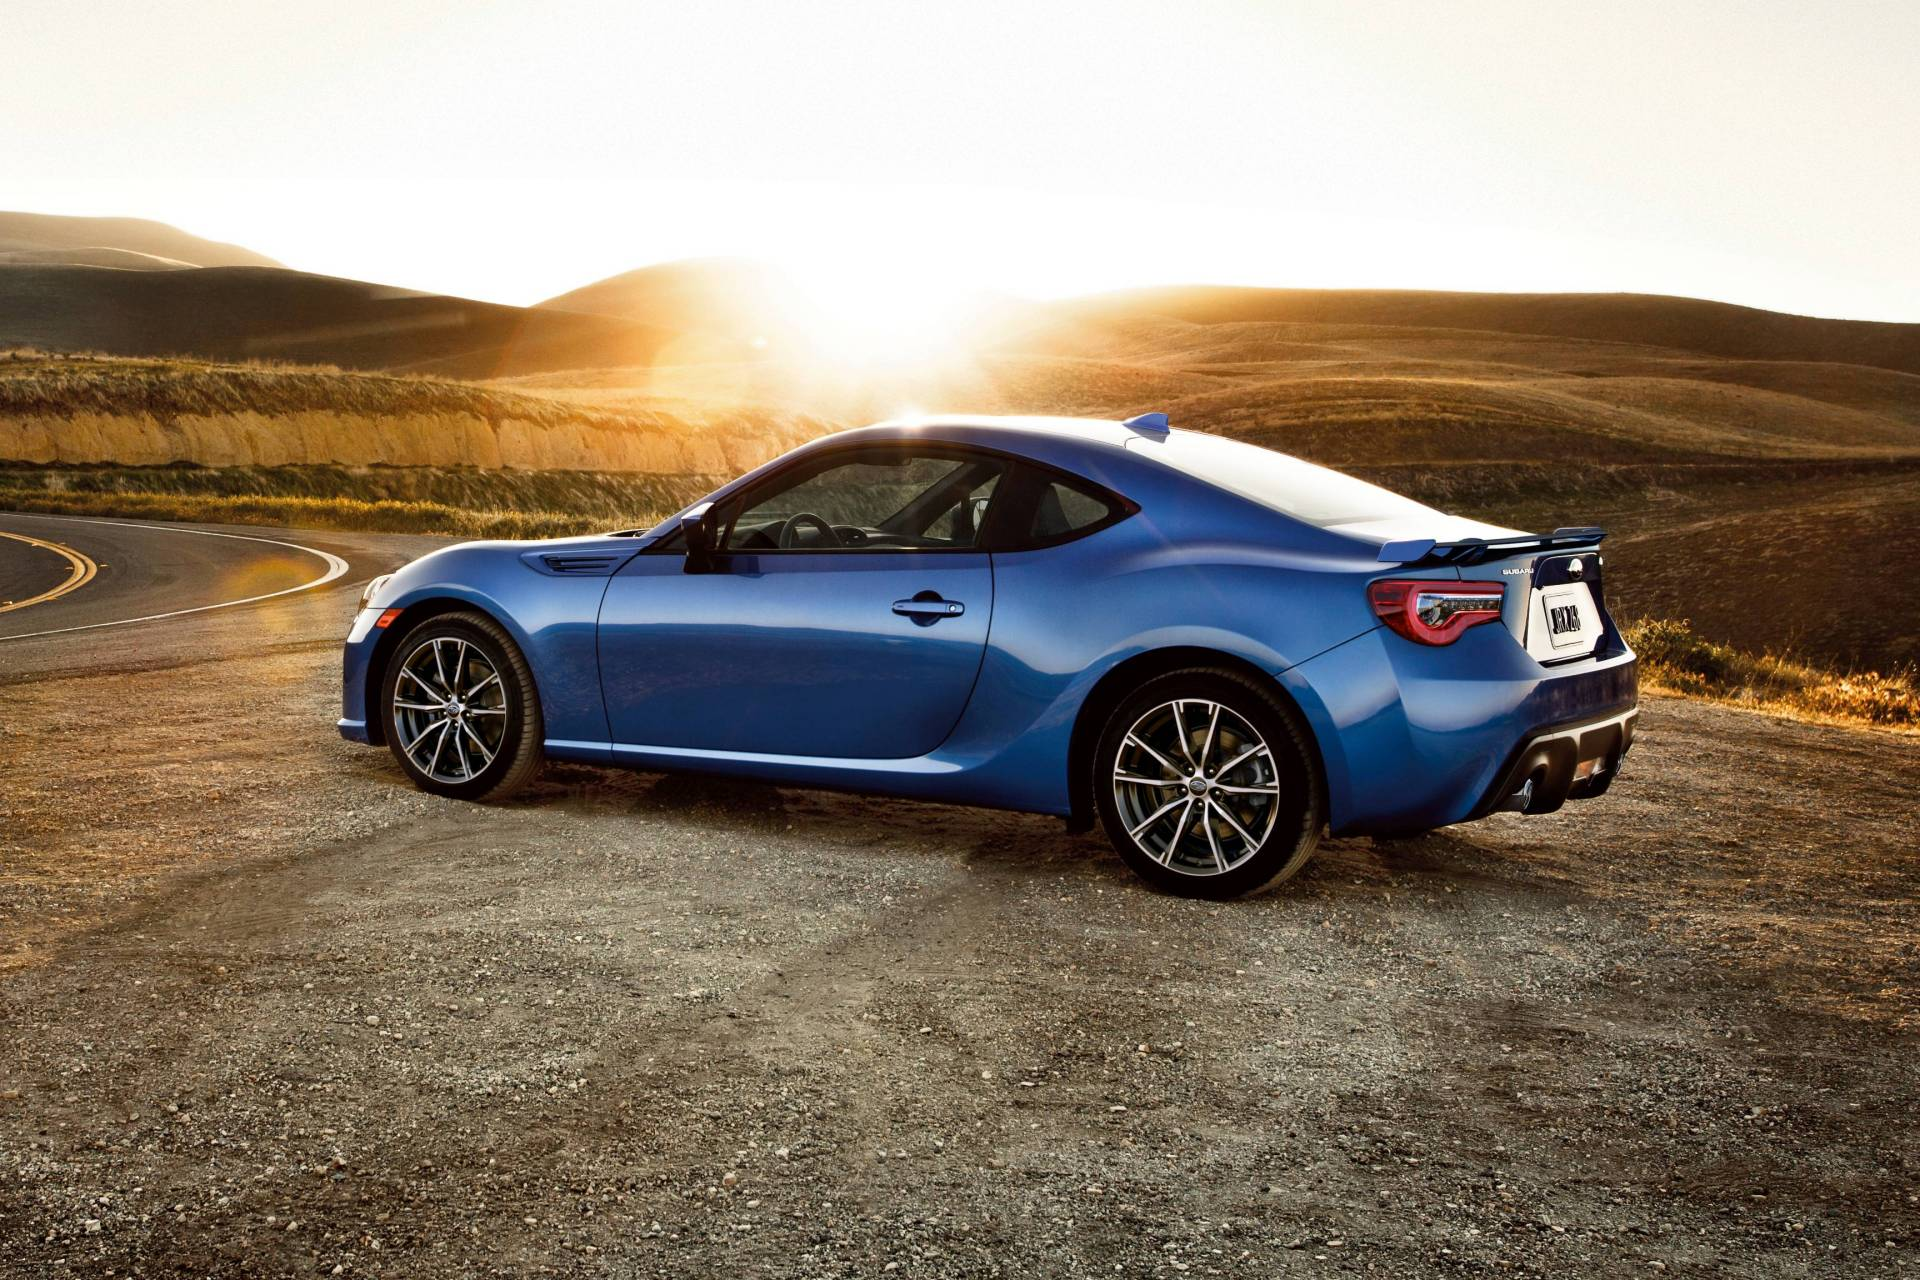 Subaru Brz 2021 Wallpapers Wallpaper Cave